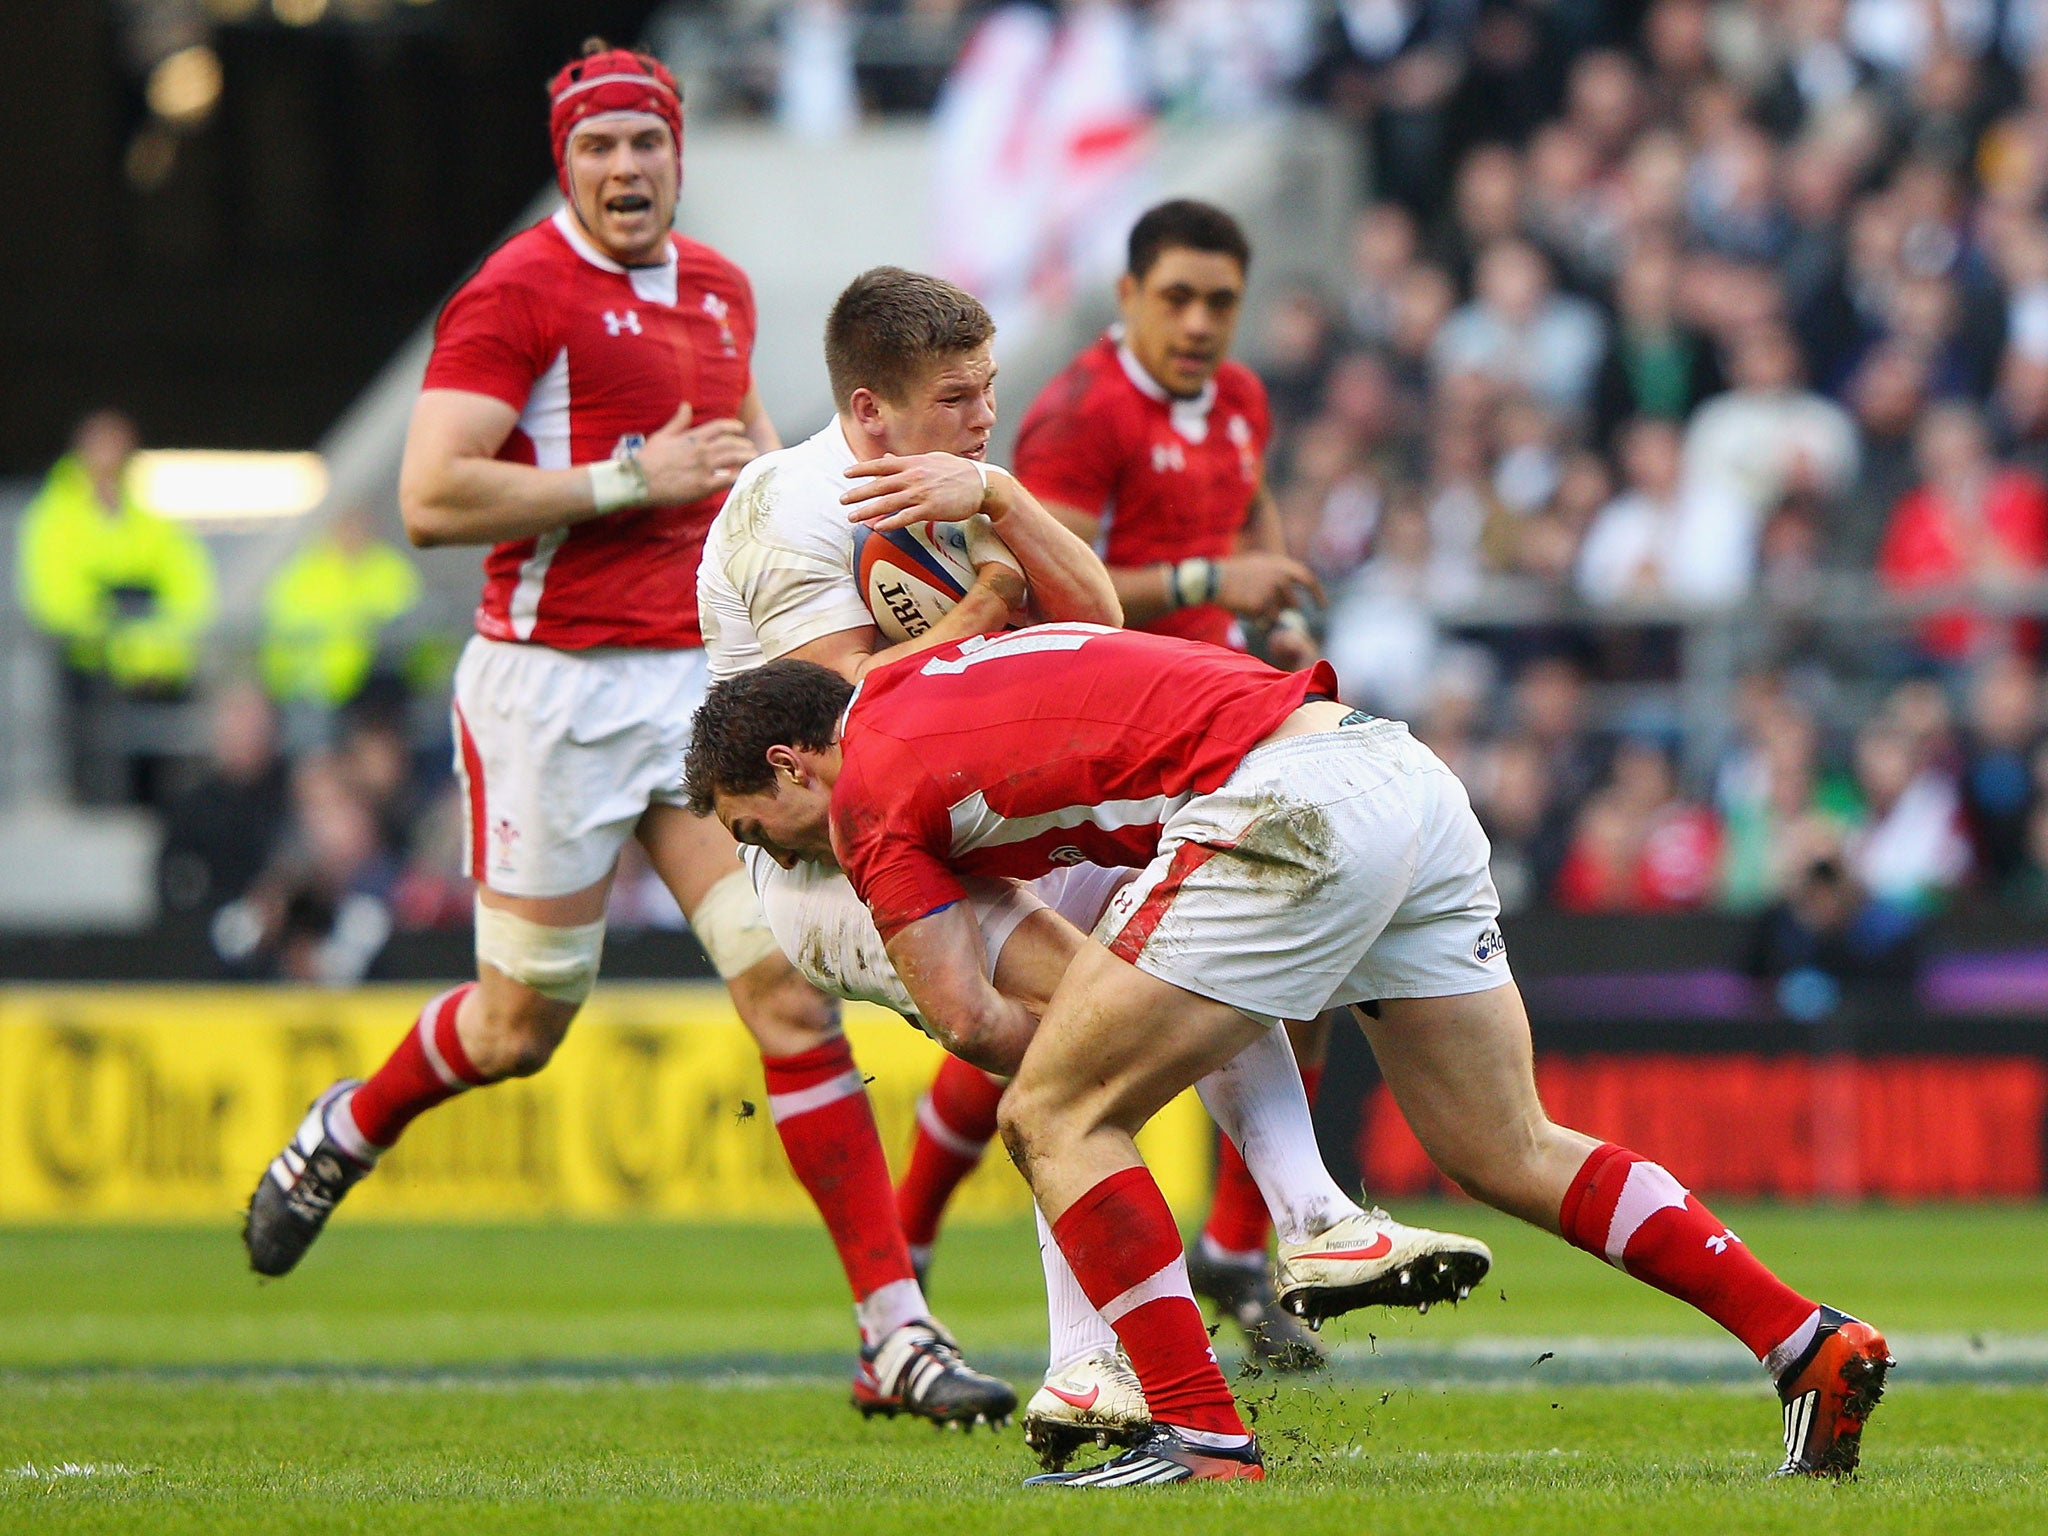 RWC 2015 Are Big Hits Delivered By Ever Bigger Players Ruining The Game